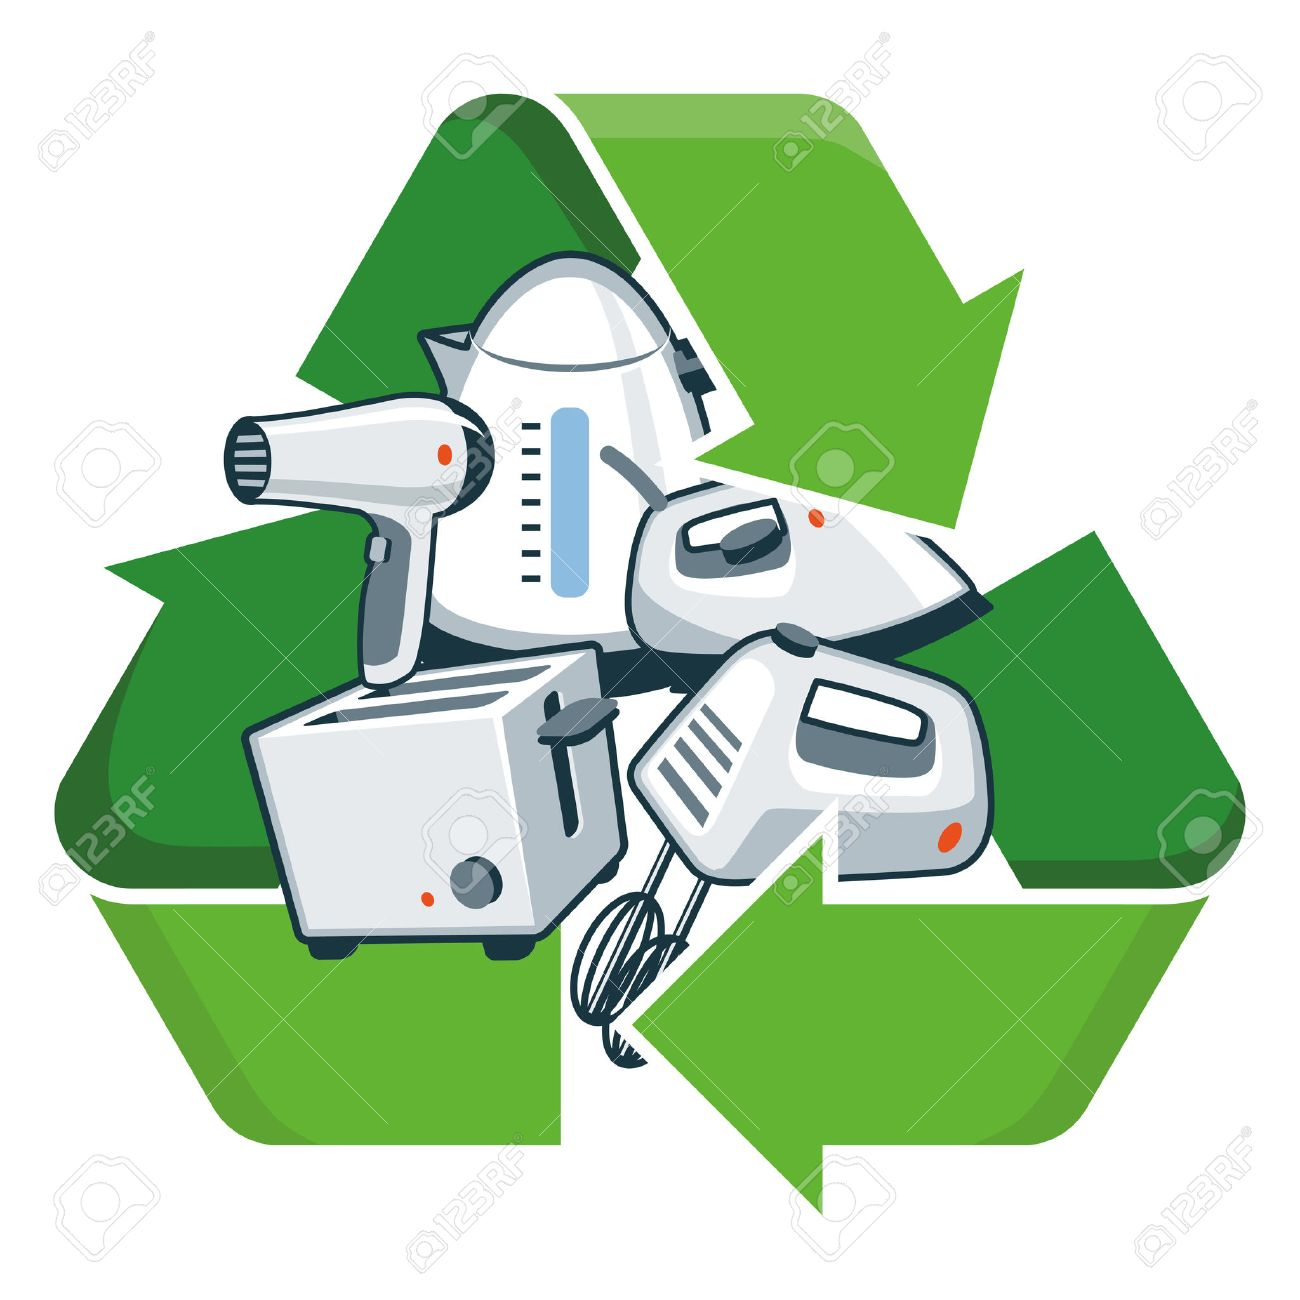 Small Electronic Home Appliances With Recycling Symbol Isolated